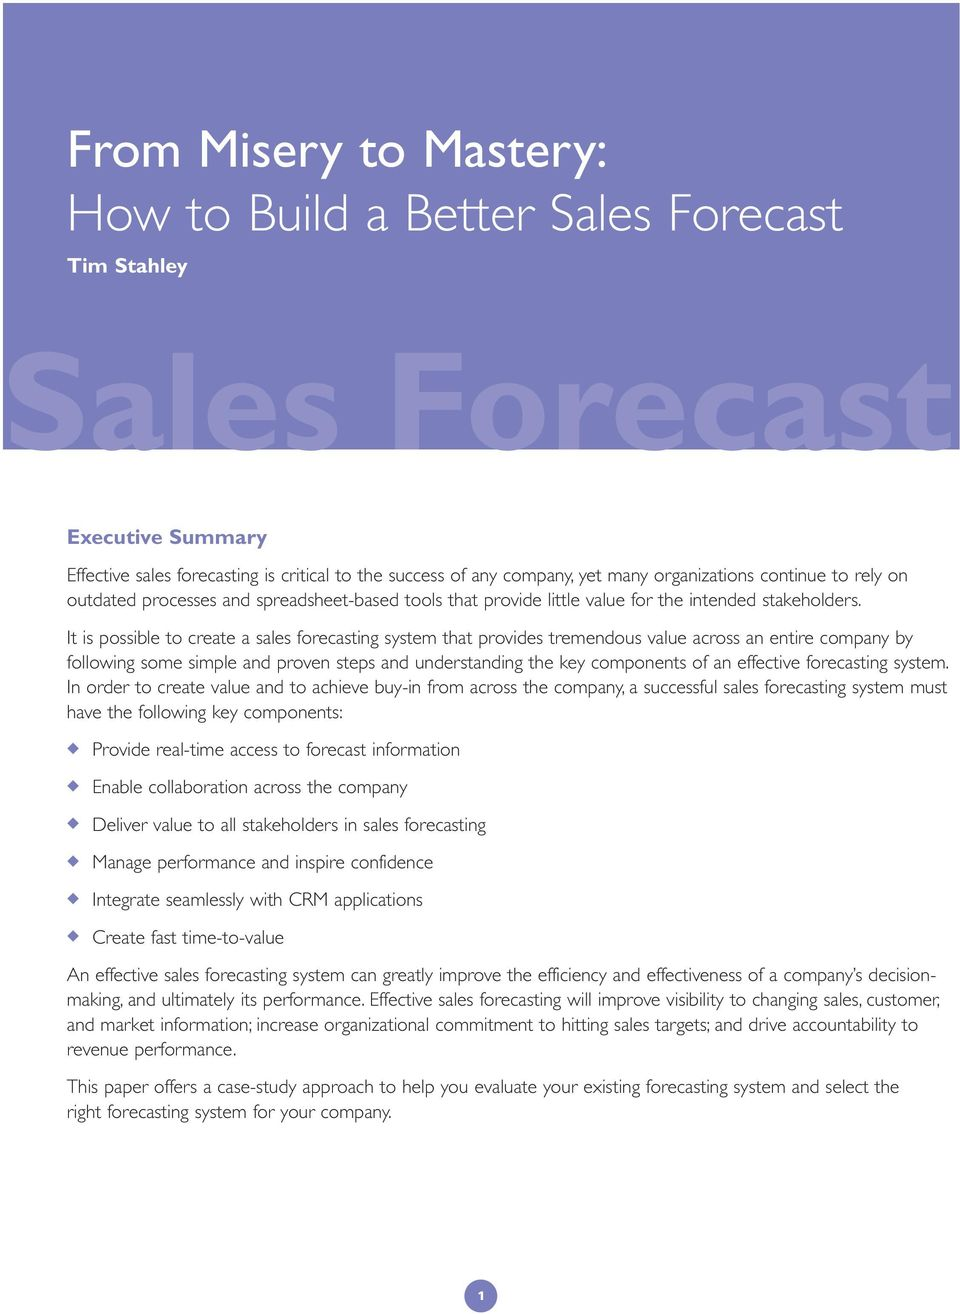 It is possible to create a sales forecasting system that provides tremendous value across an entire company by following some simple and proven steps and understanding the key components of an